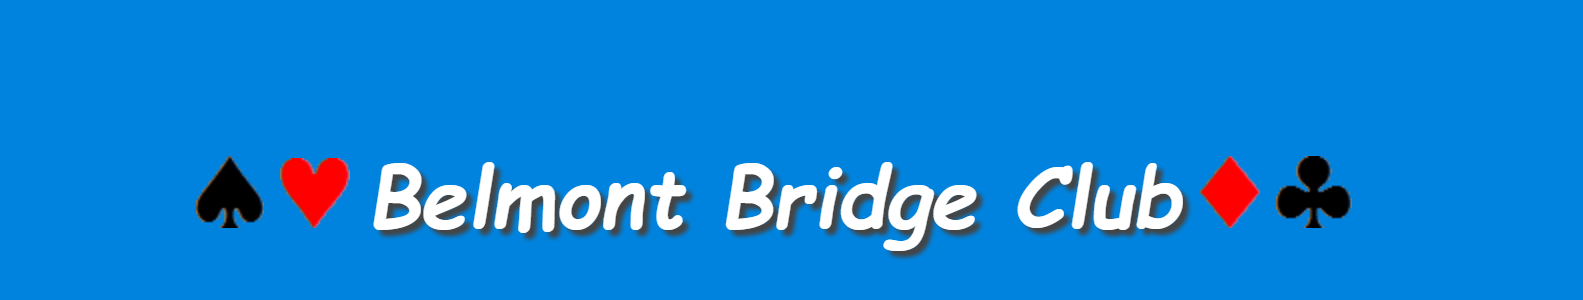 How to Register for Belmont Bridge Club Pairs Games